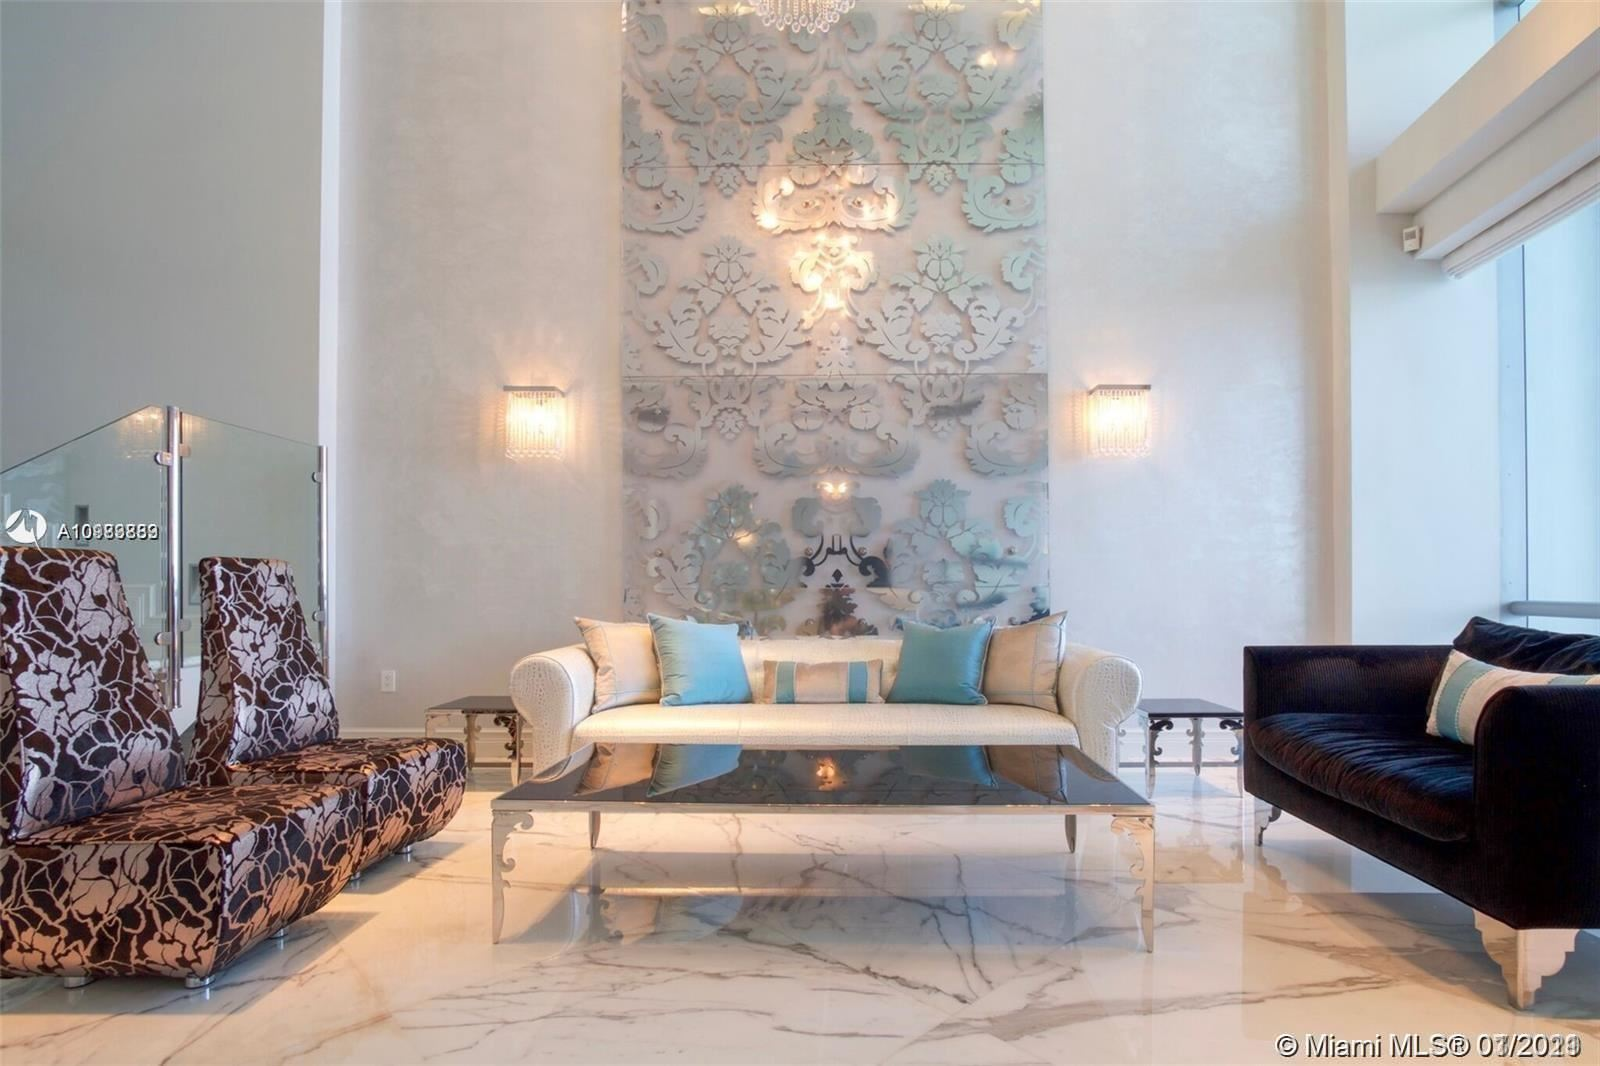 17121 Collins Ave #4404PH, Sunny Isles, FL 33160 - #: A10983889